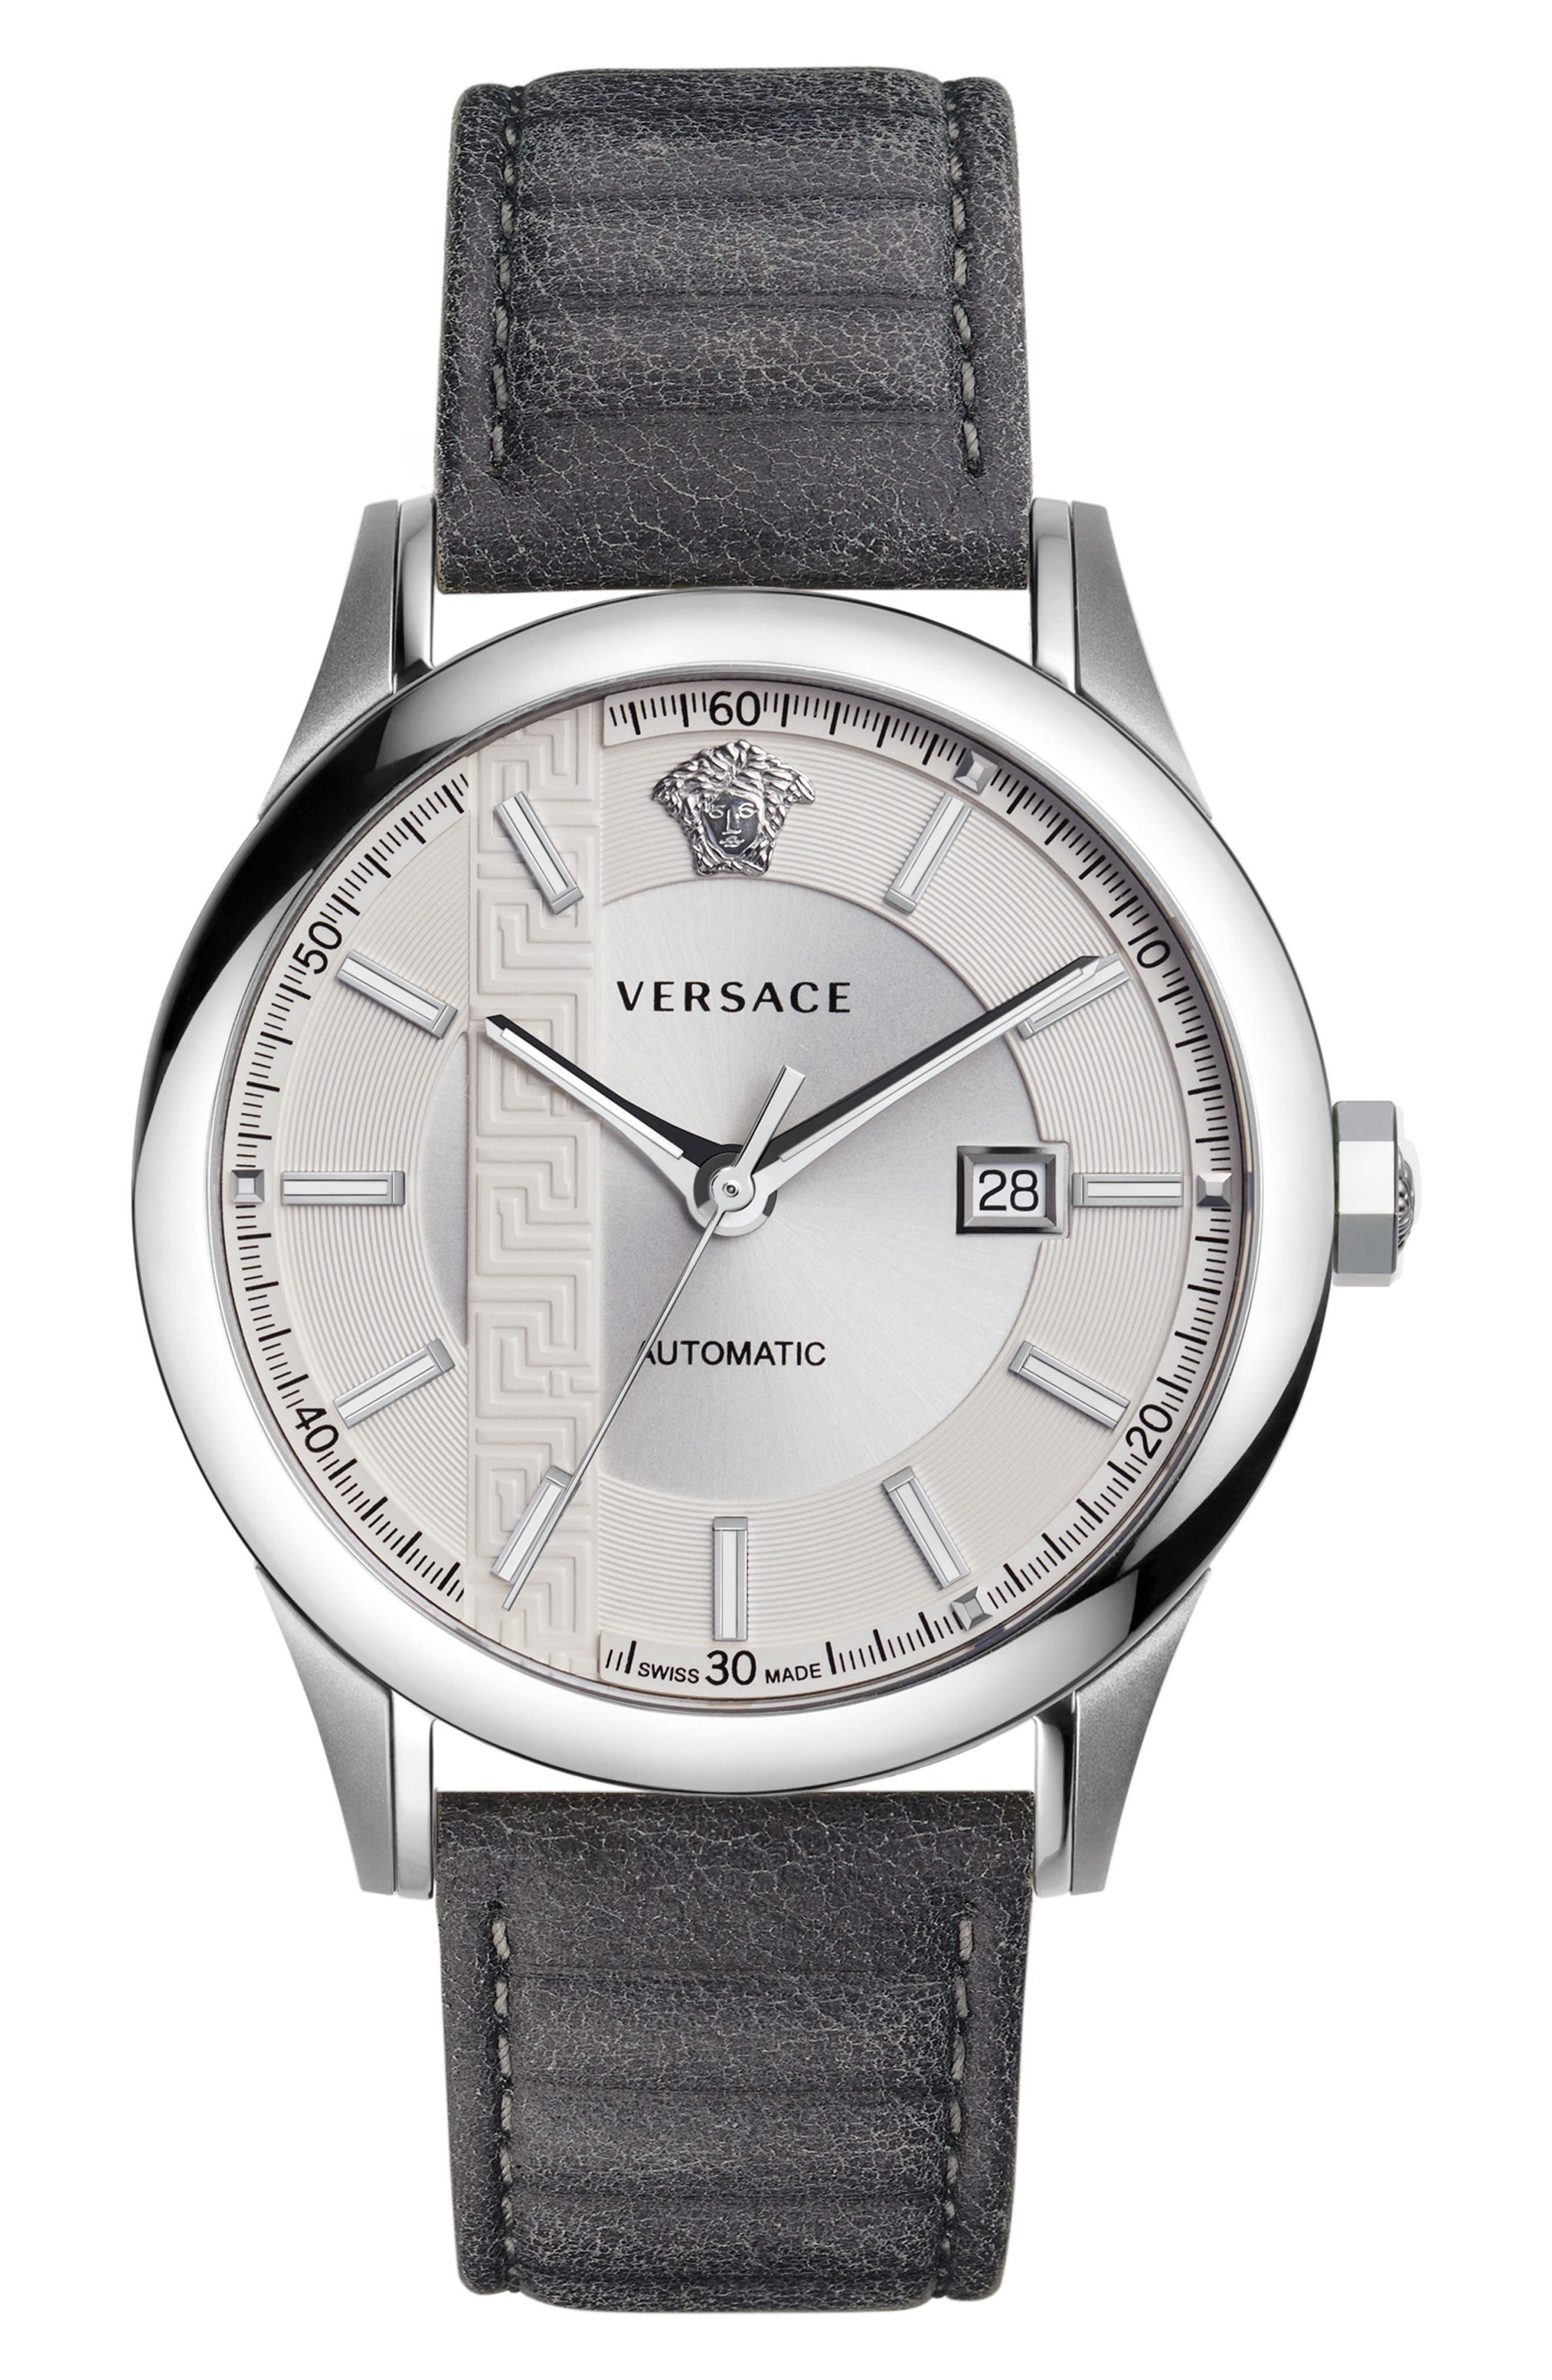 Main Image - Versace Aiakos Automatic Leather Strap Watch, 44mm